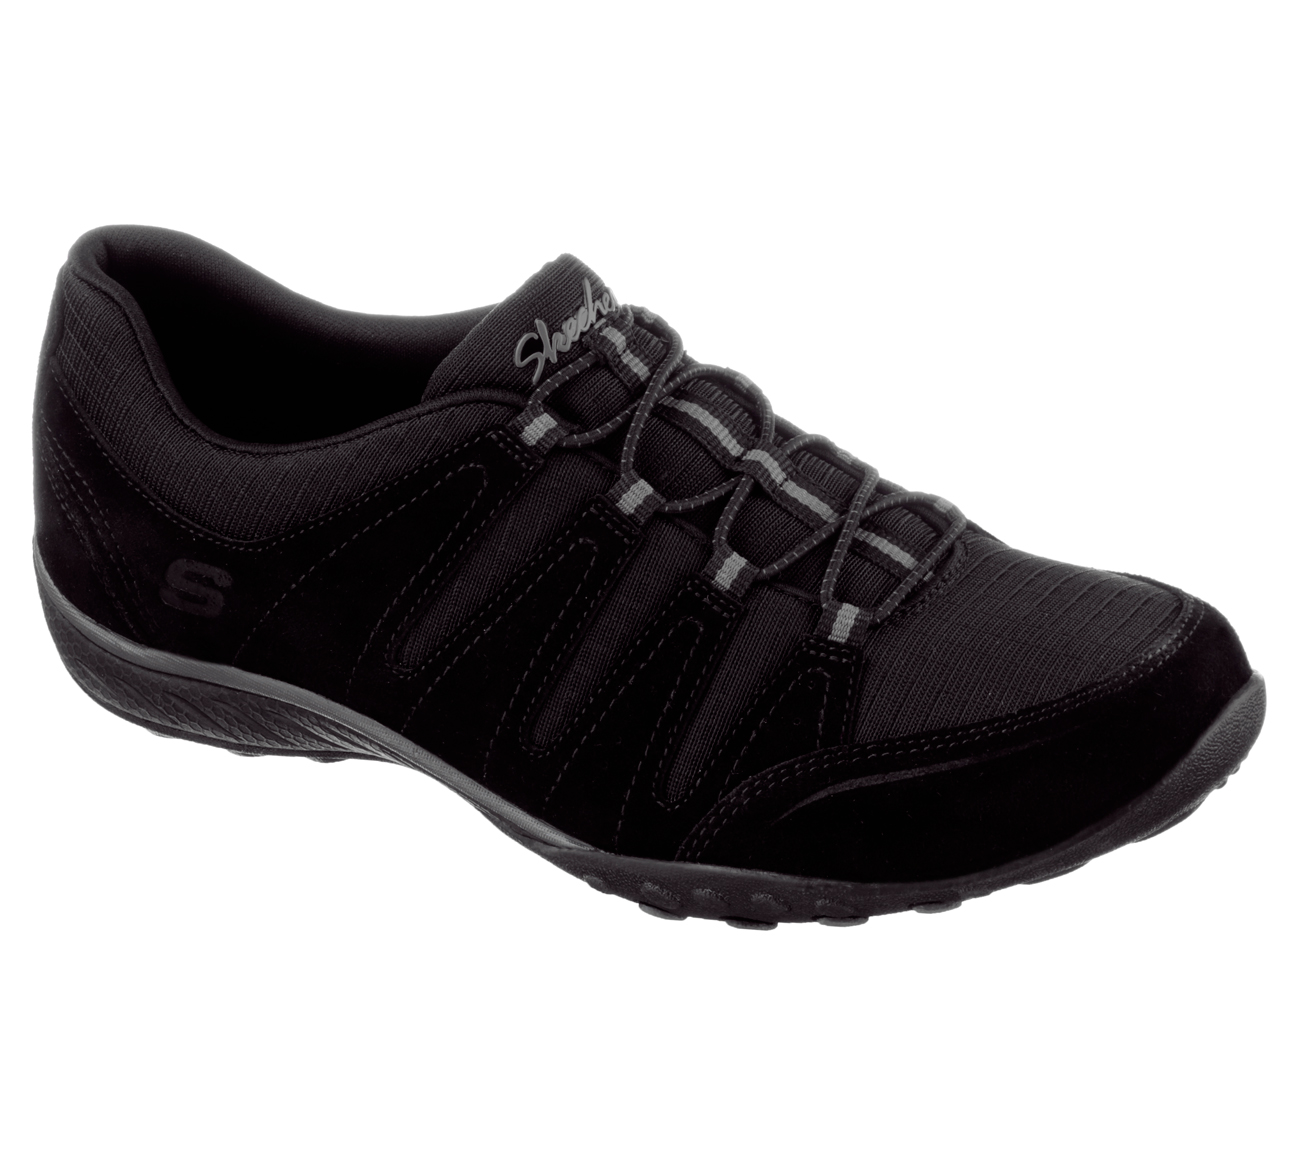 12 wide womens shoes :: Clothes stores